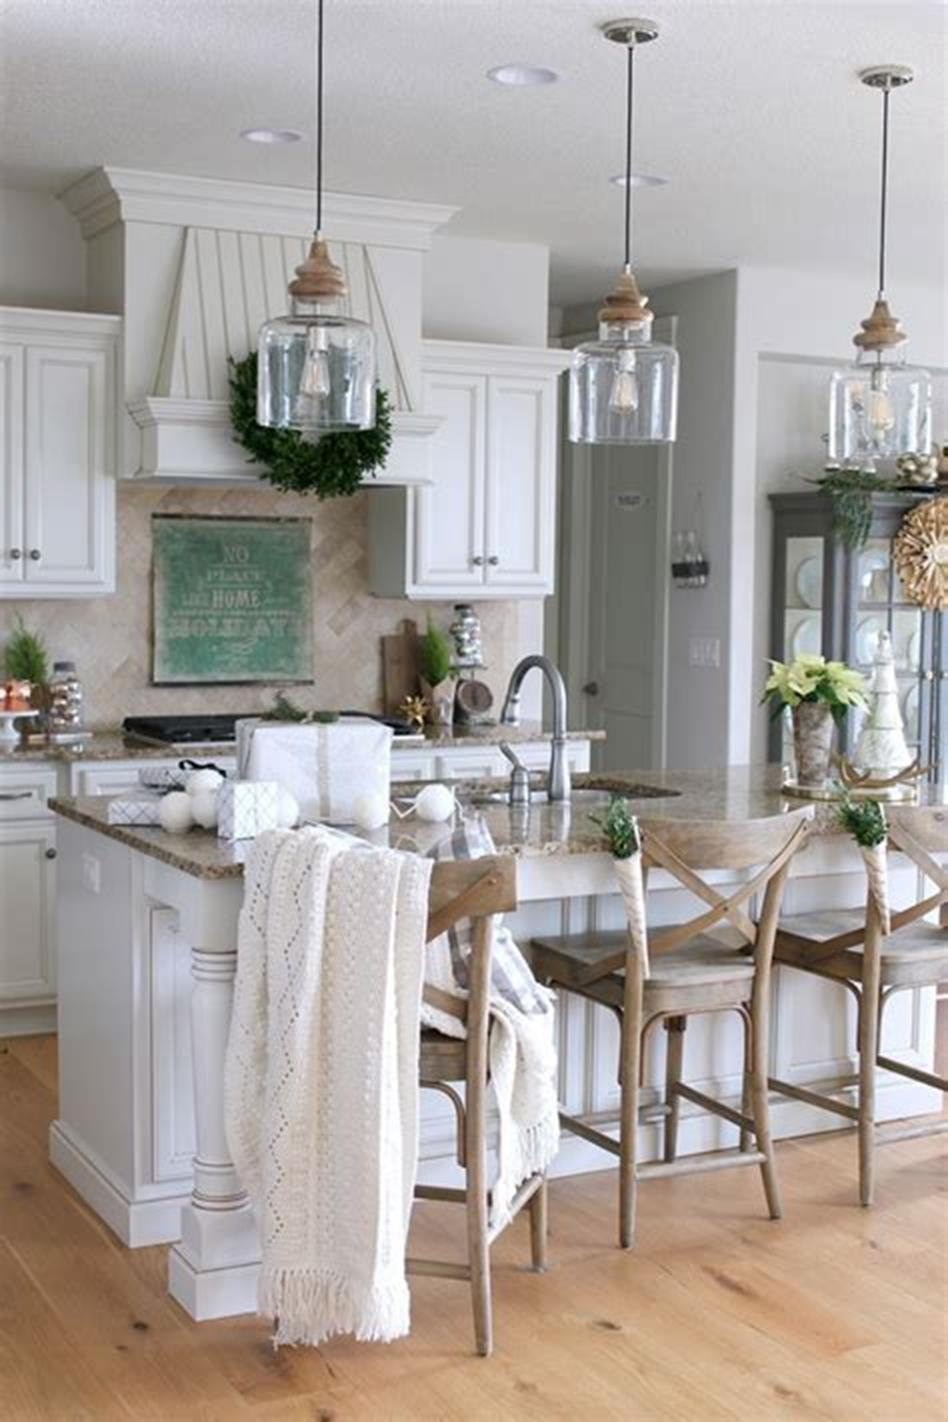 50 Inspiring Farmhouse Style Kitchen Lighting Fixtures Ideas 41